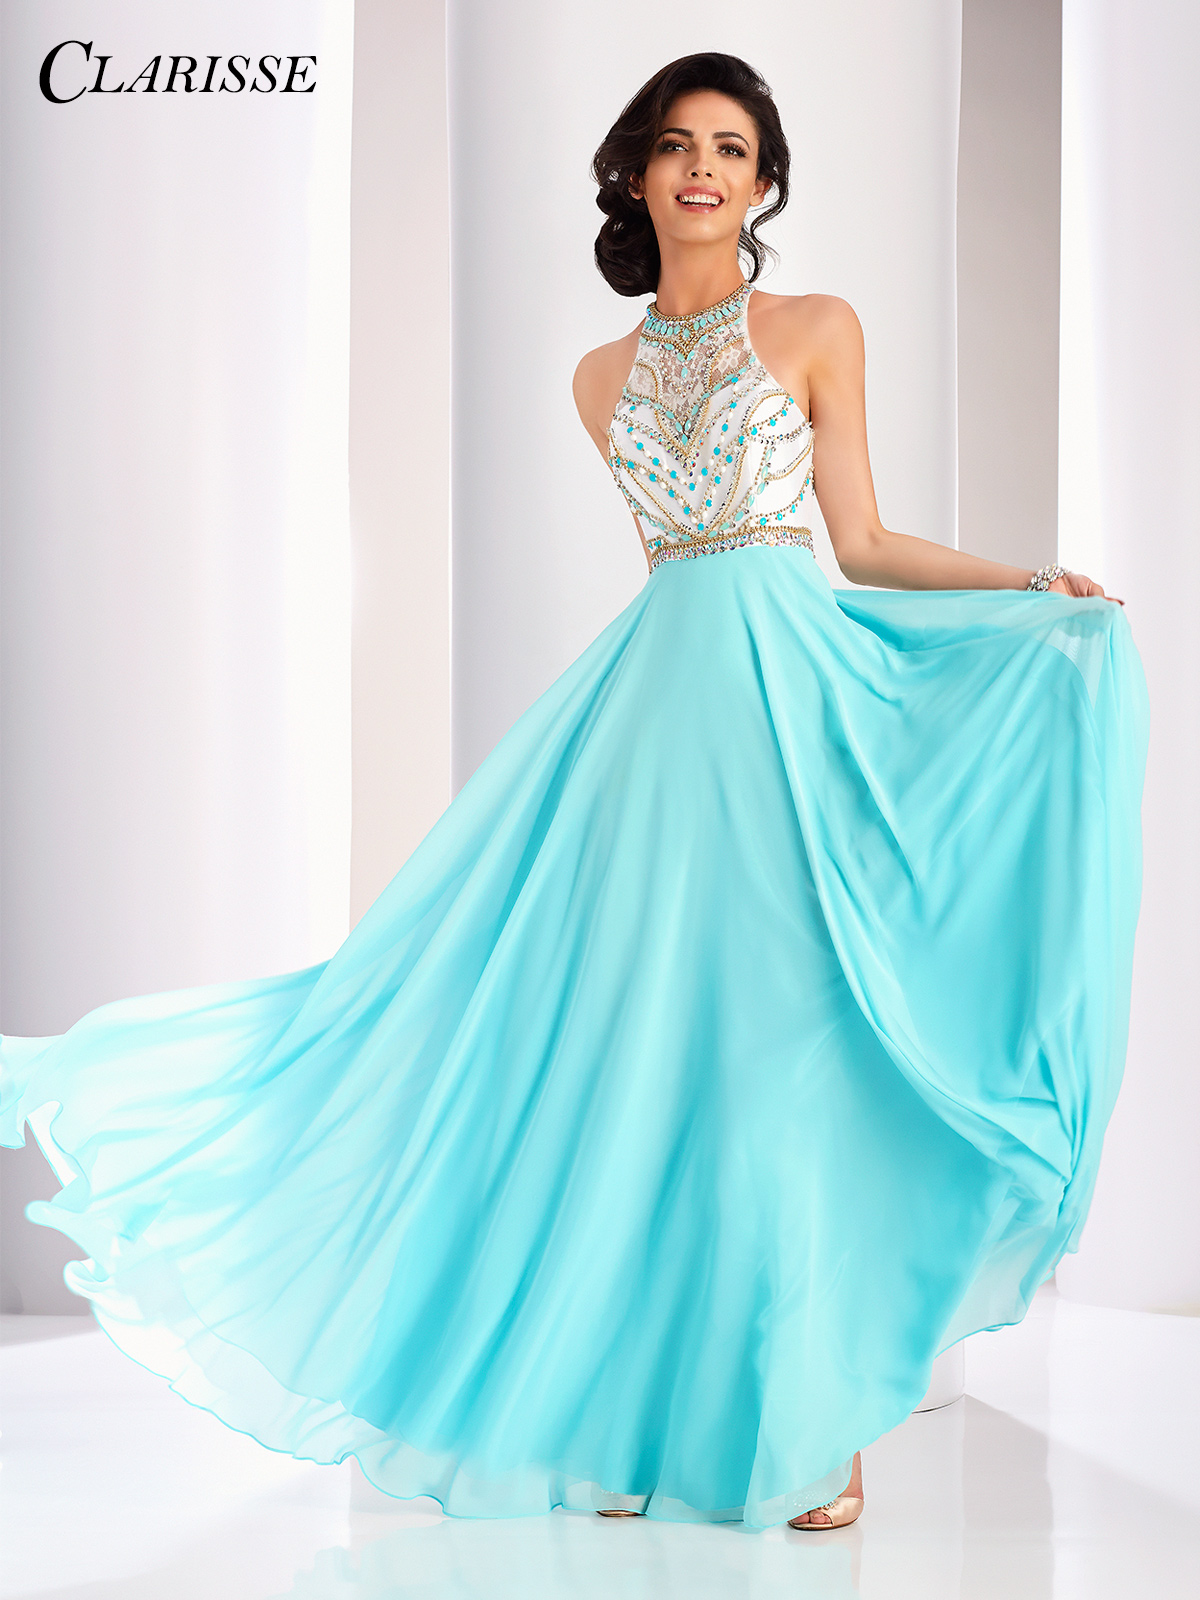 Clarisse Prom Dress 3069 | Promgirl.net